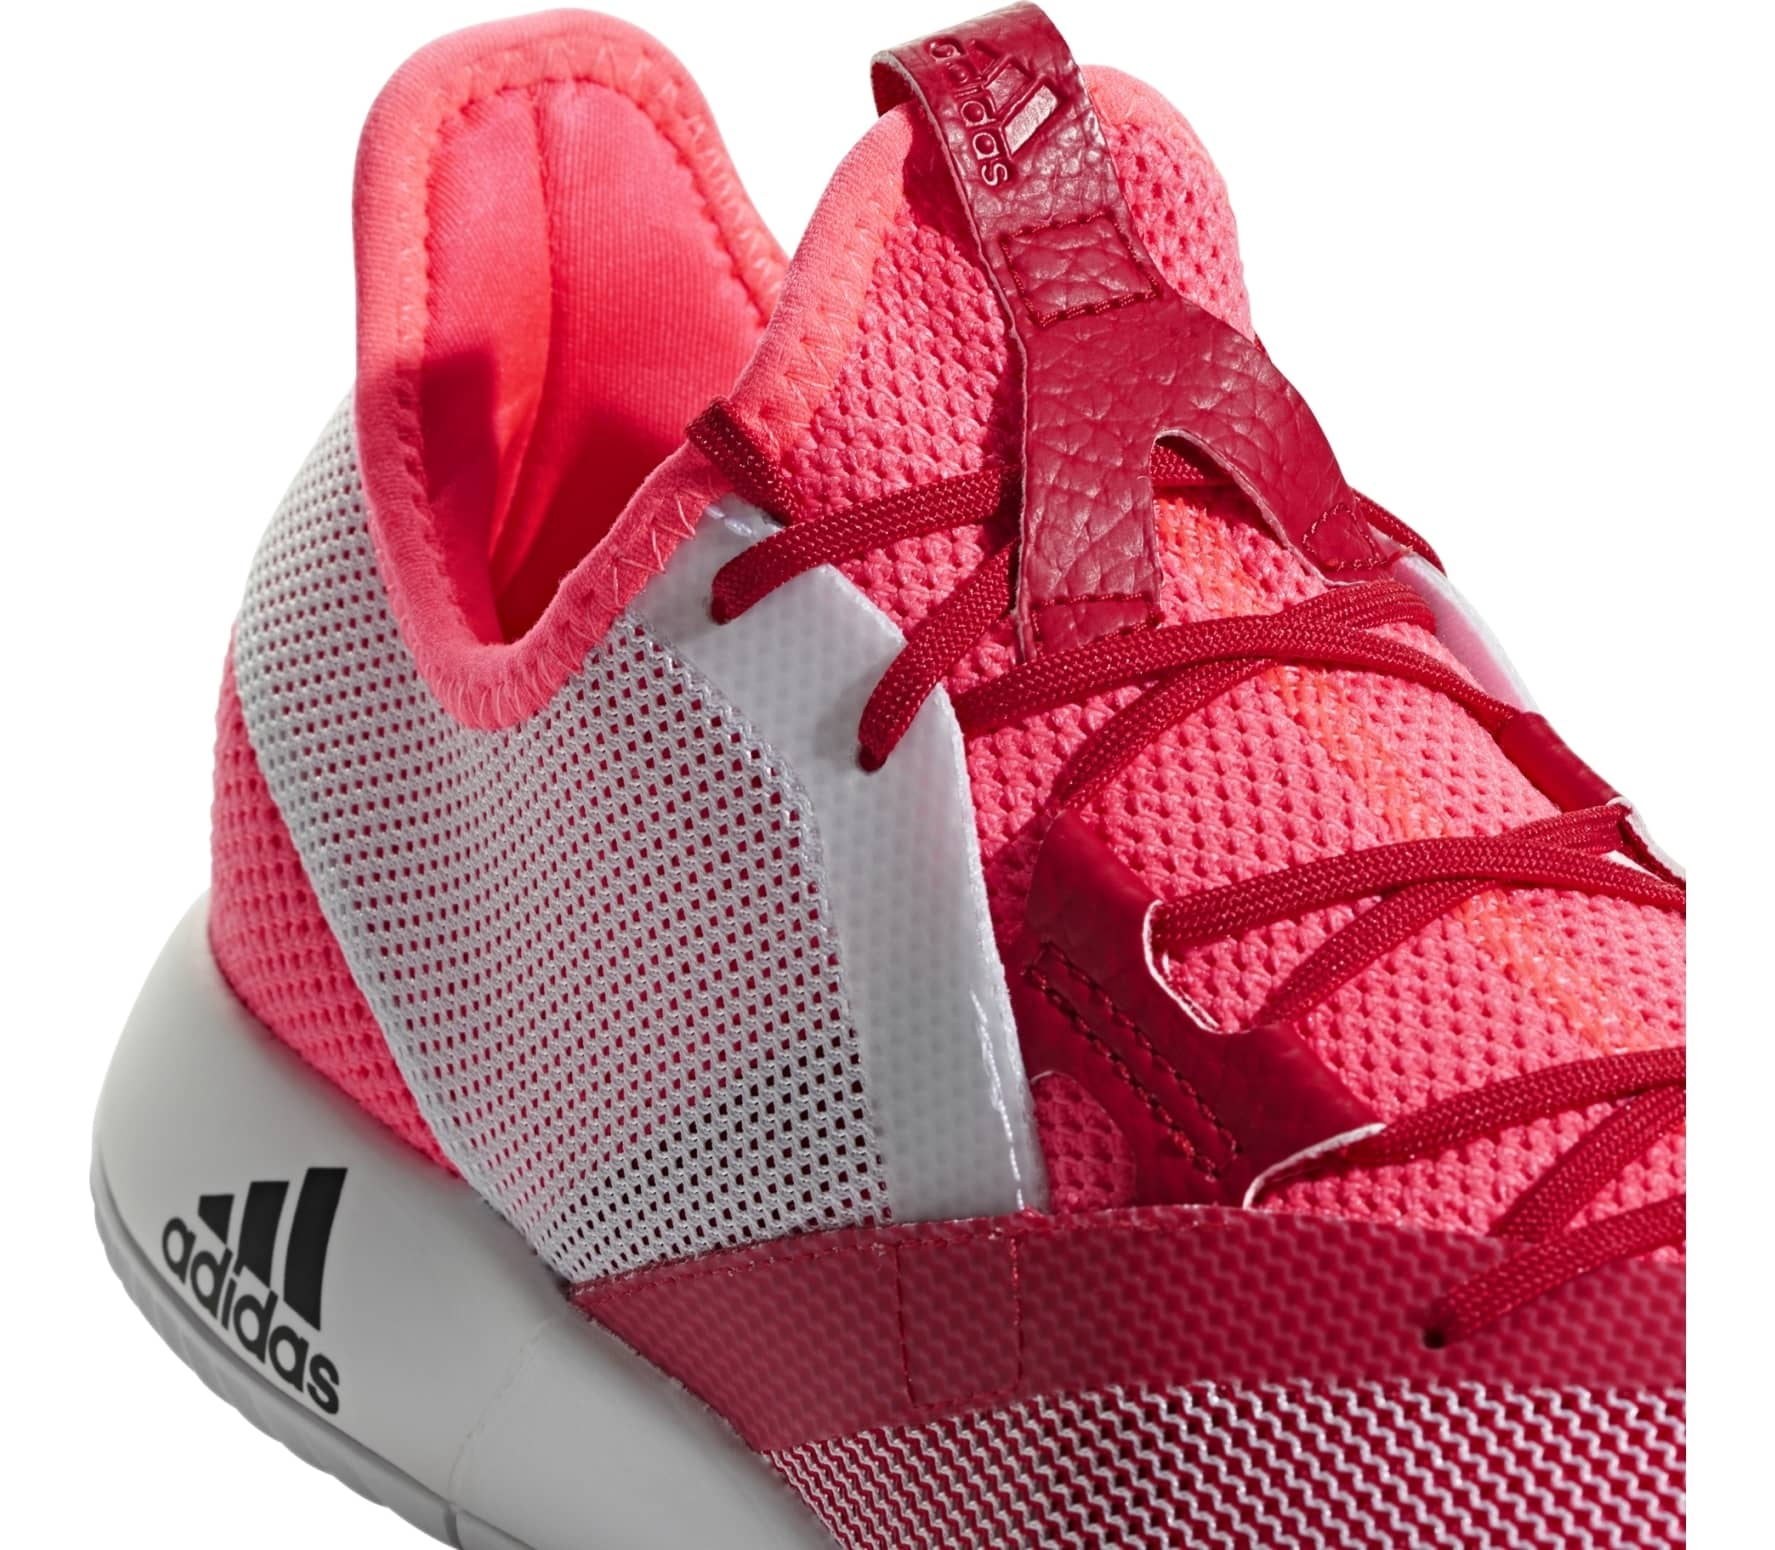 finest selection 22f55 e1bb9 adidas performance - Adizero Defiant Bounce womens tennis shoes (red)